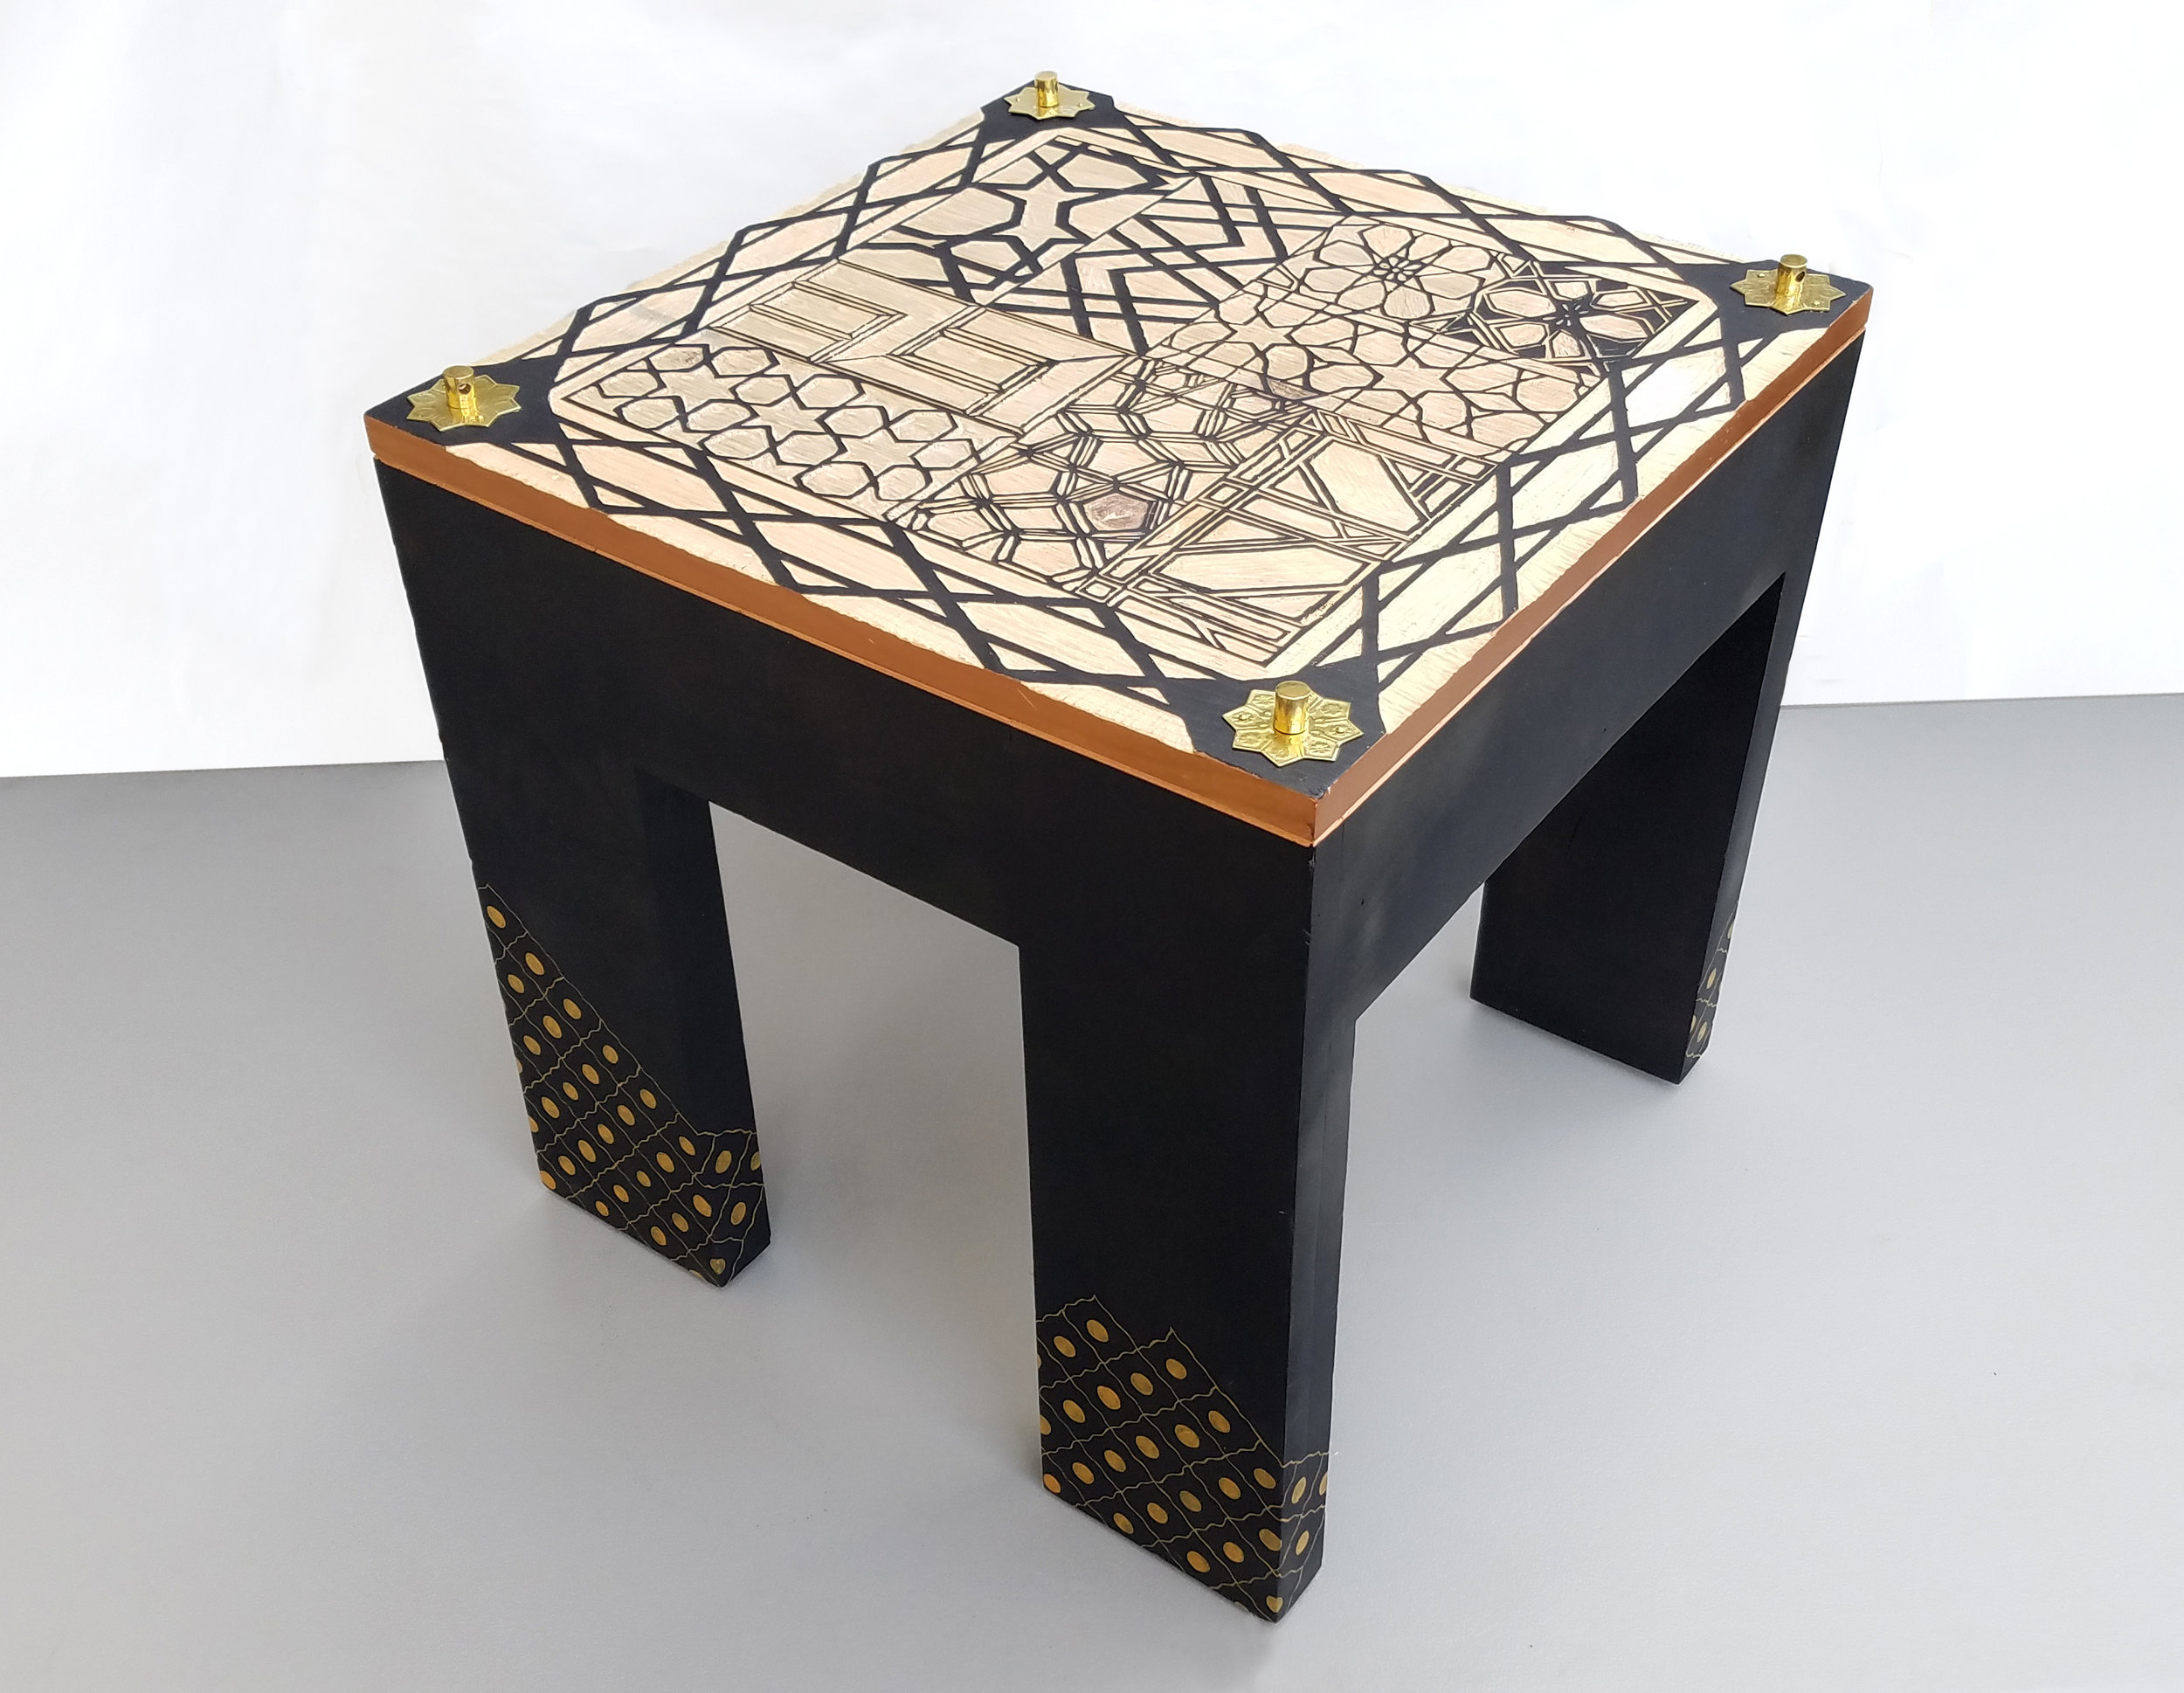 Jacoub Reyes Arabesque Table (1).jpg